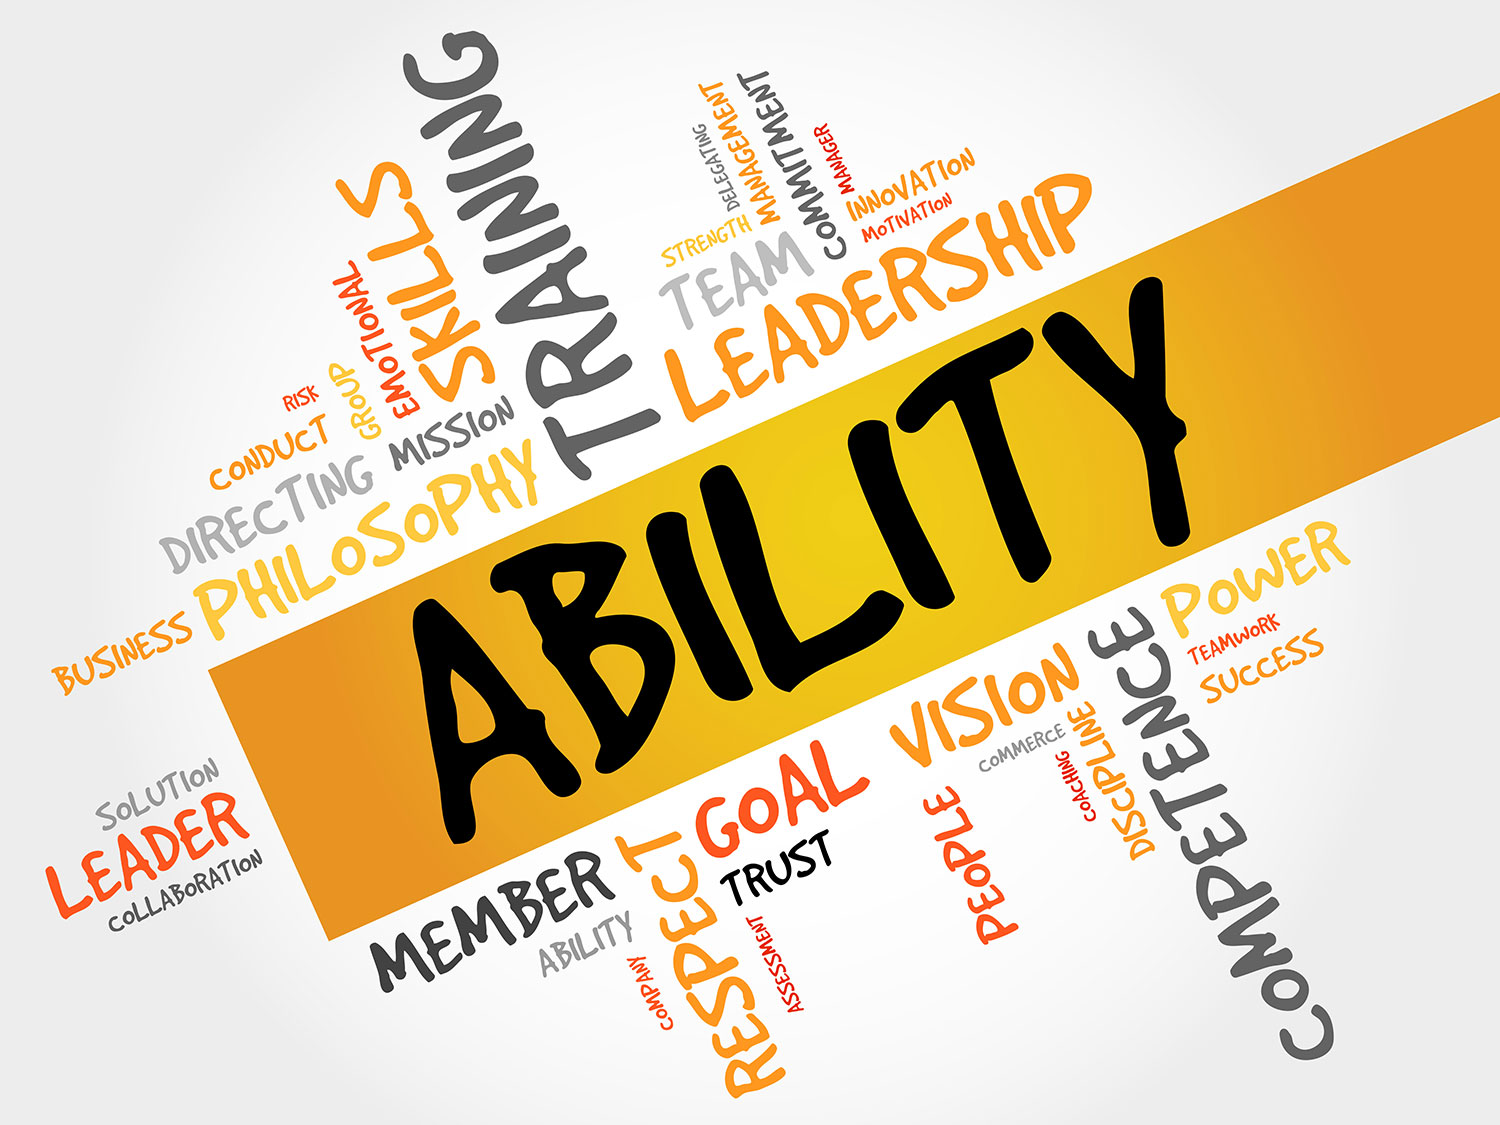 Personal abilities